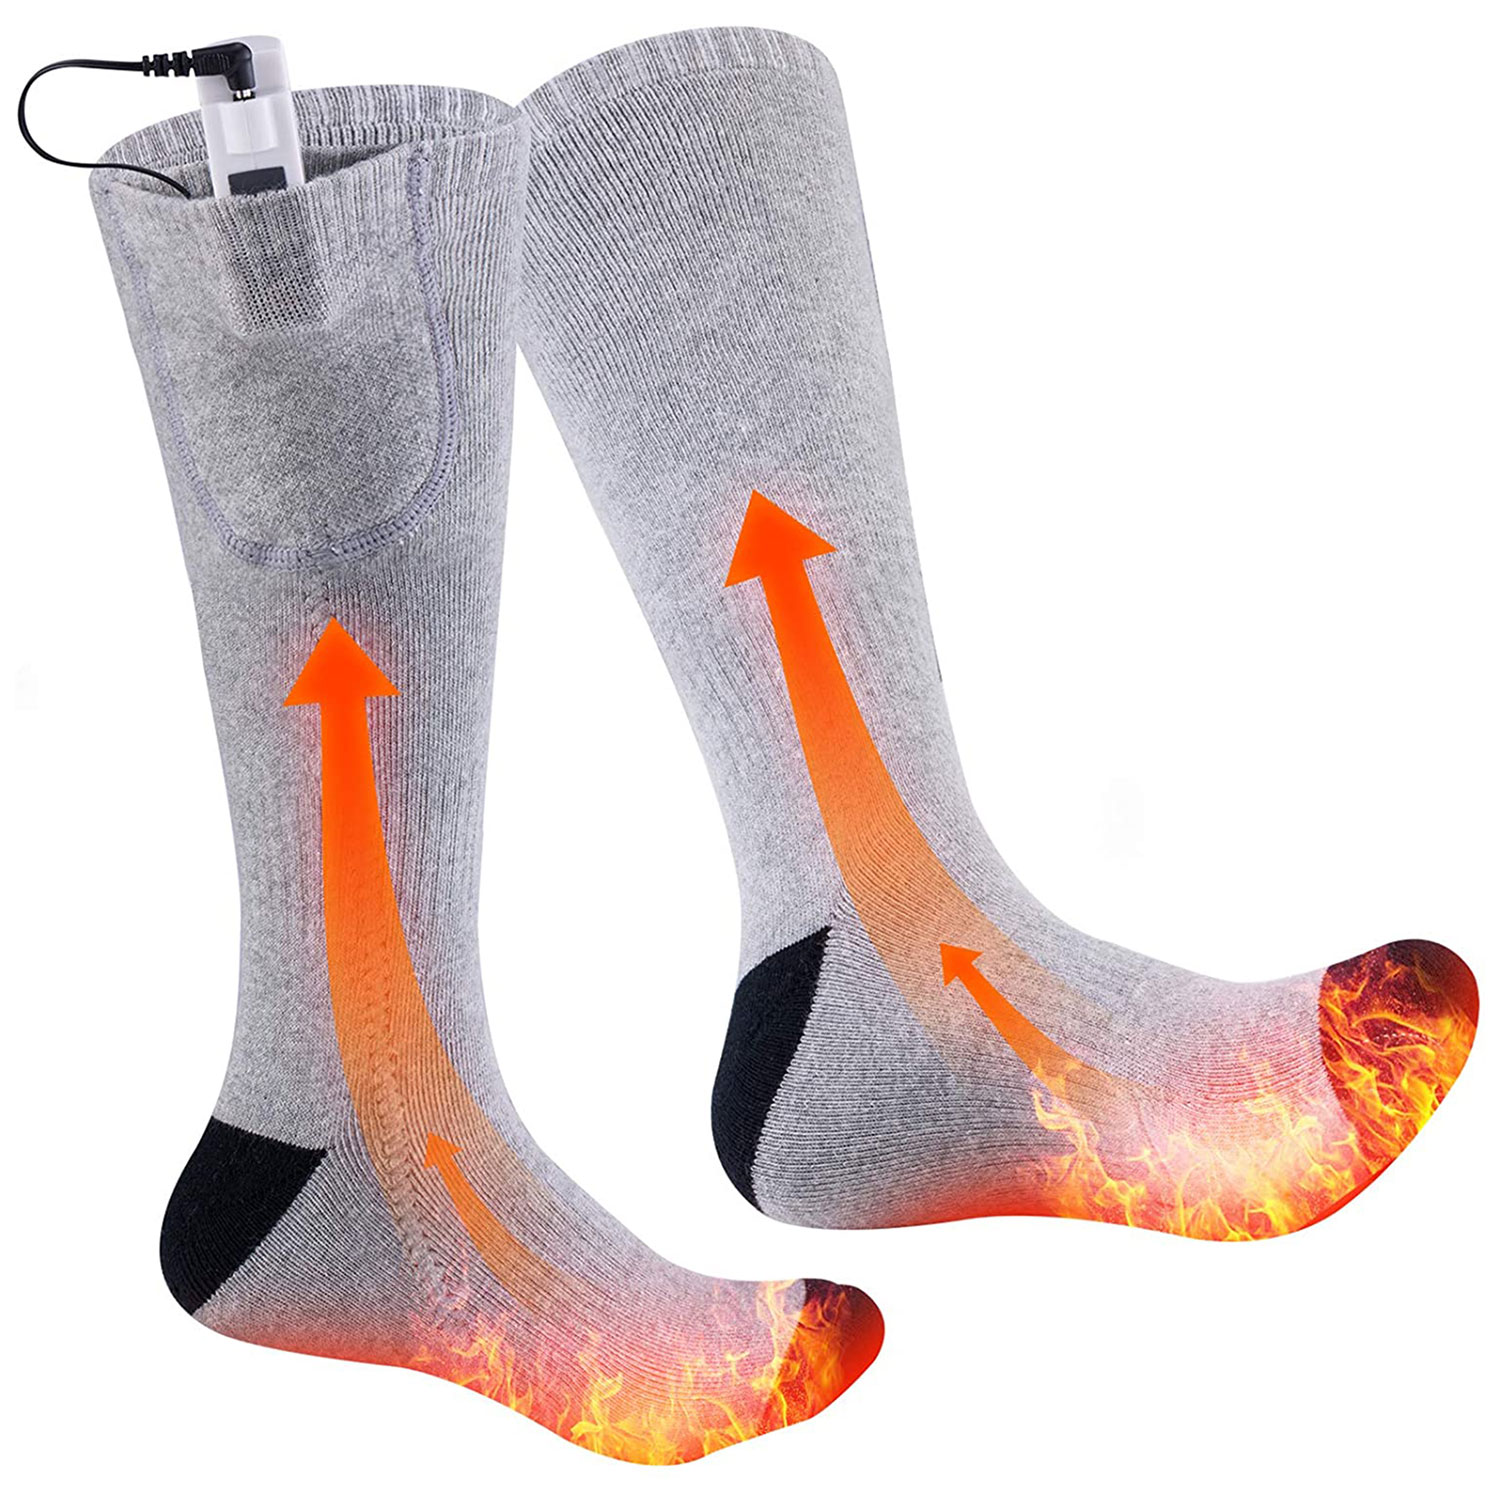 heated sock double sided camping foot warmer thermal winter cotton